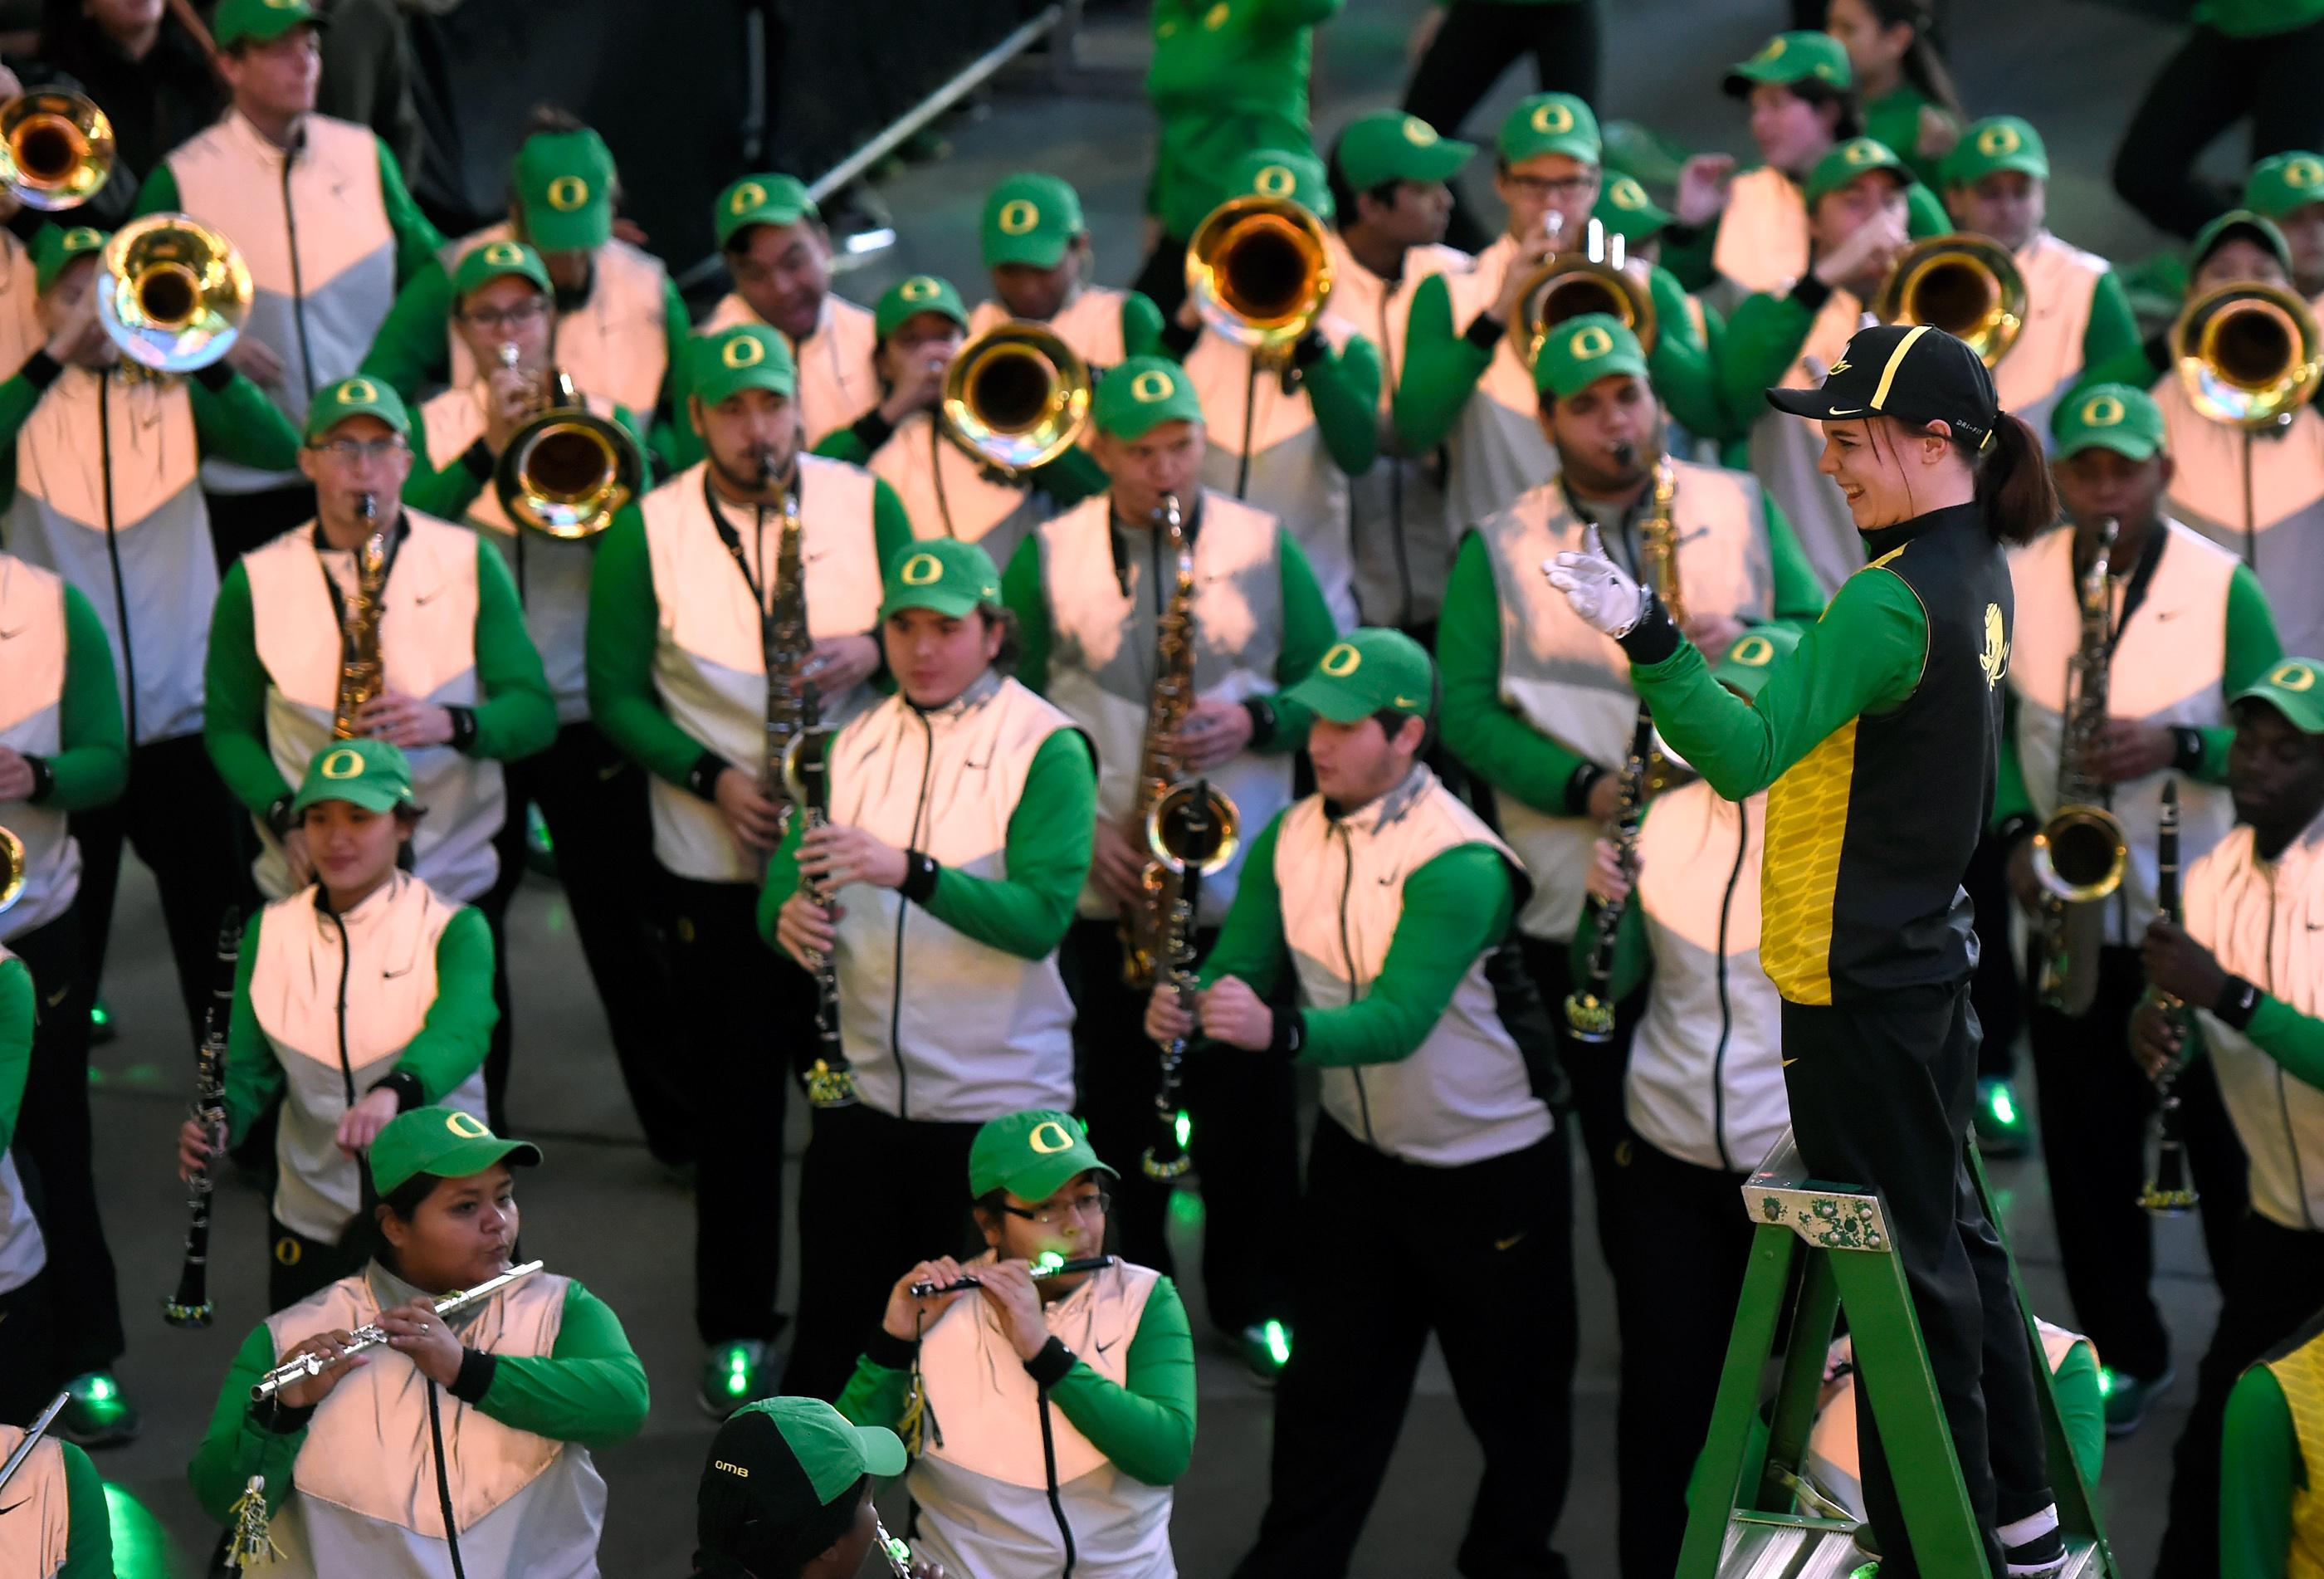 The Oregon marching band participates during a pep rally at the Fremont Street Experience Friday, Dec. 15, 2017, in Las Vegas. The Boise State Bronco will take on the Oregon Ducks in the 26th edition of the Las Vegas Bowl at Sam Boyd Stadium on Saturday. CREDIT: David Becker/Las Vegas News Bureau